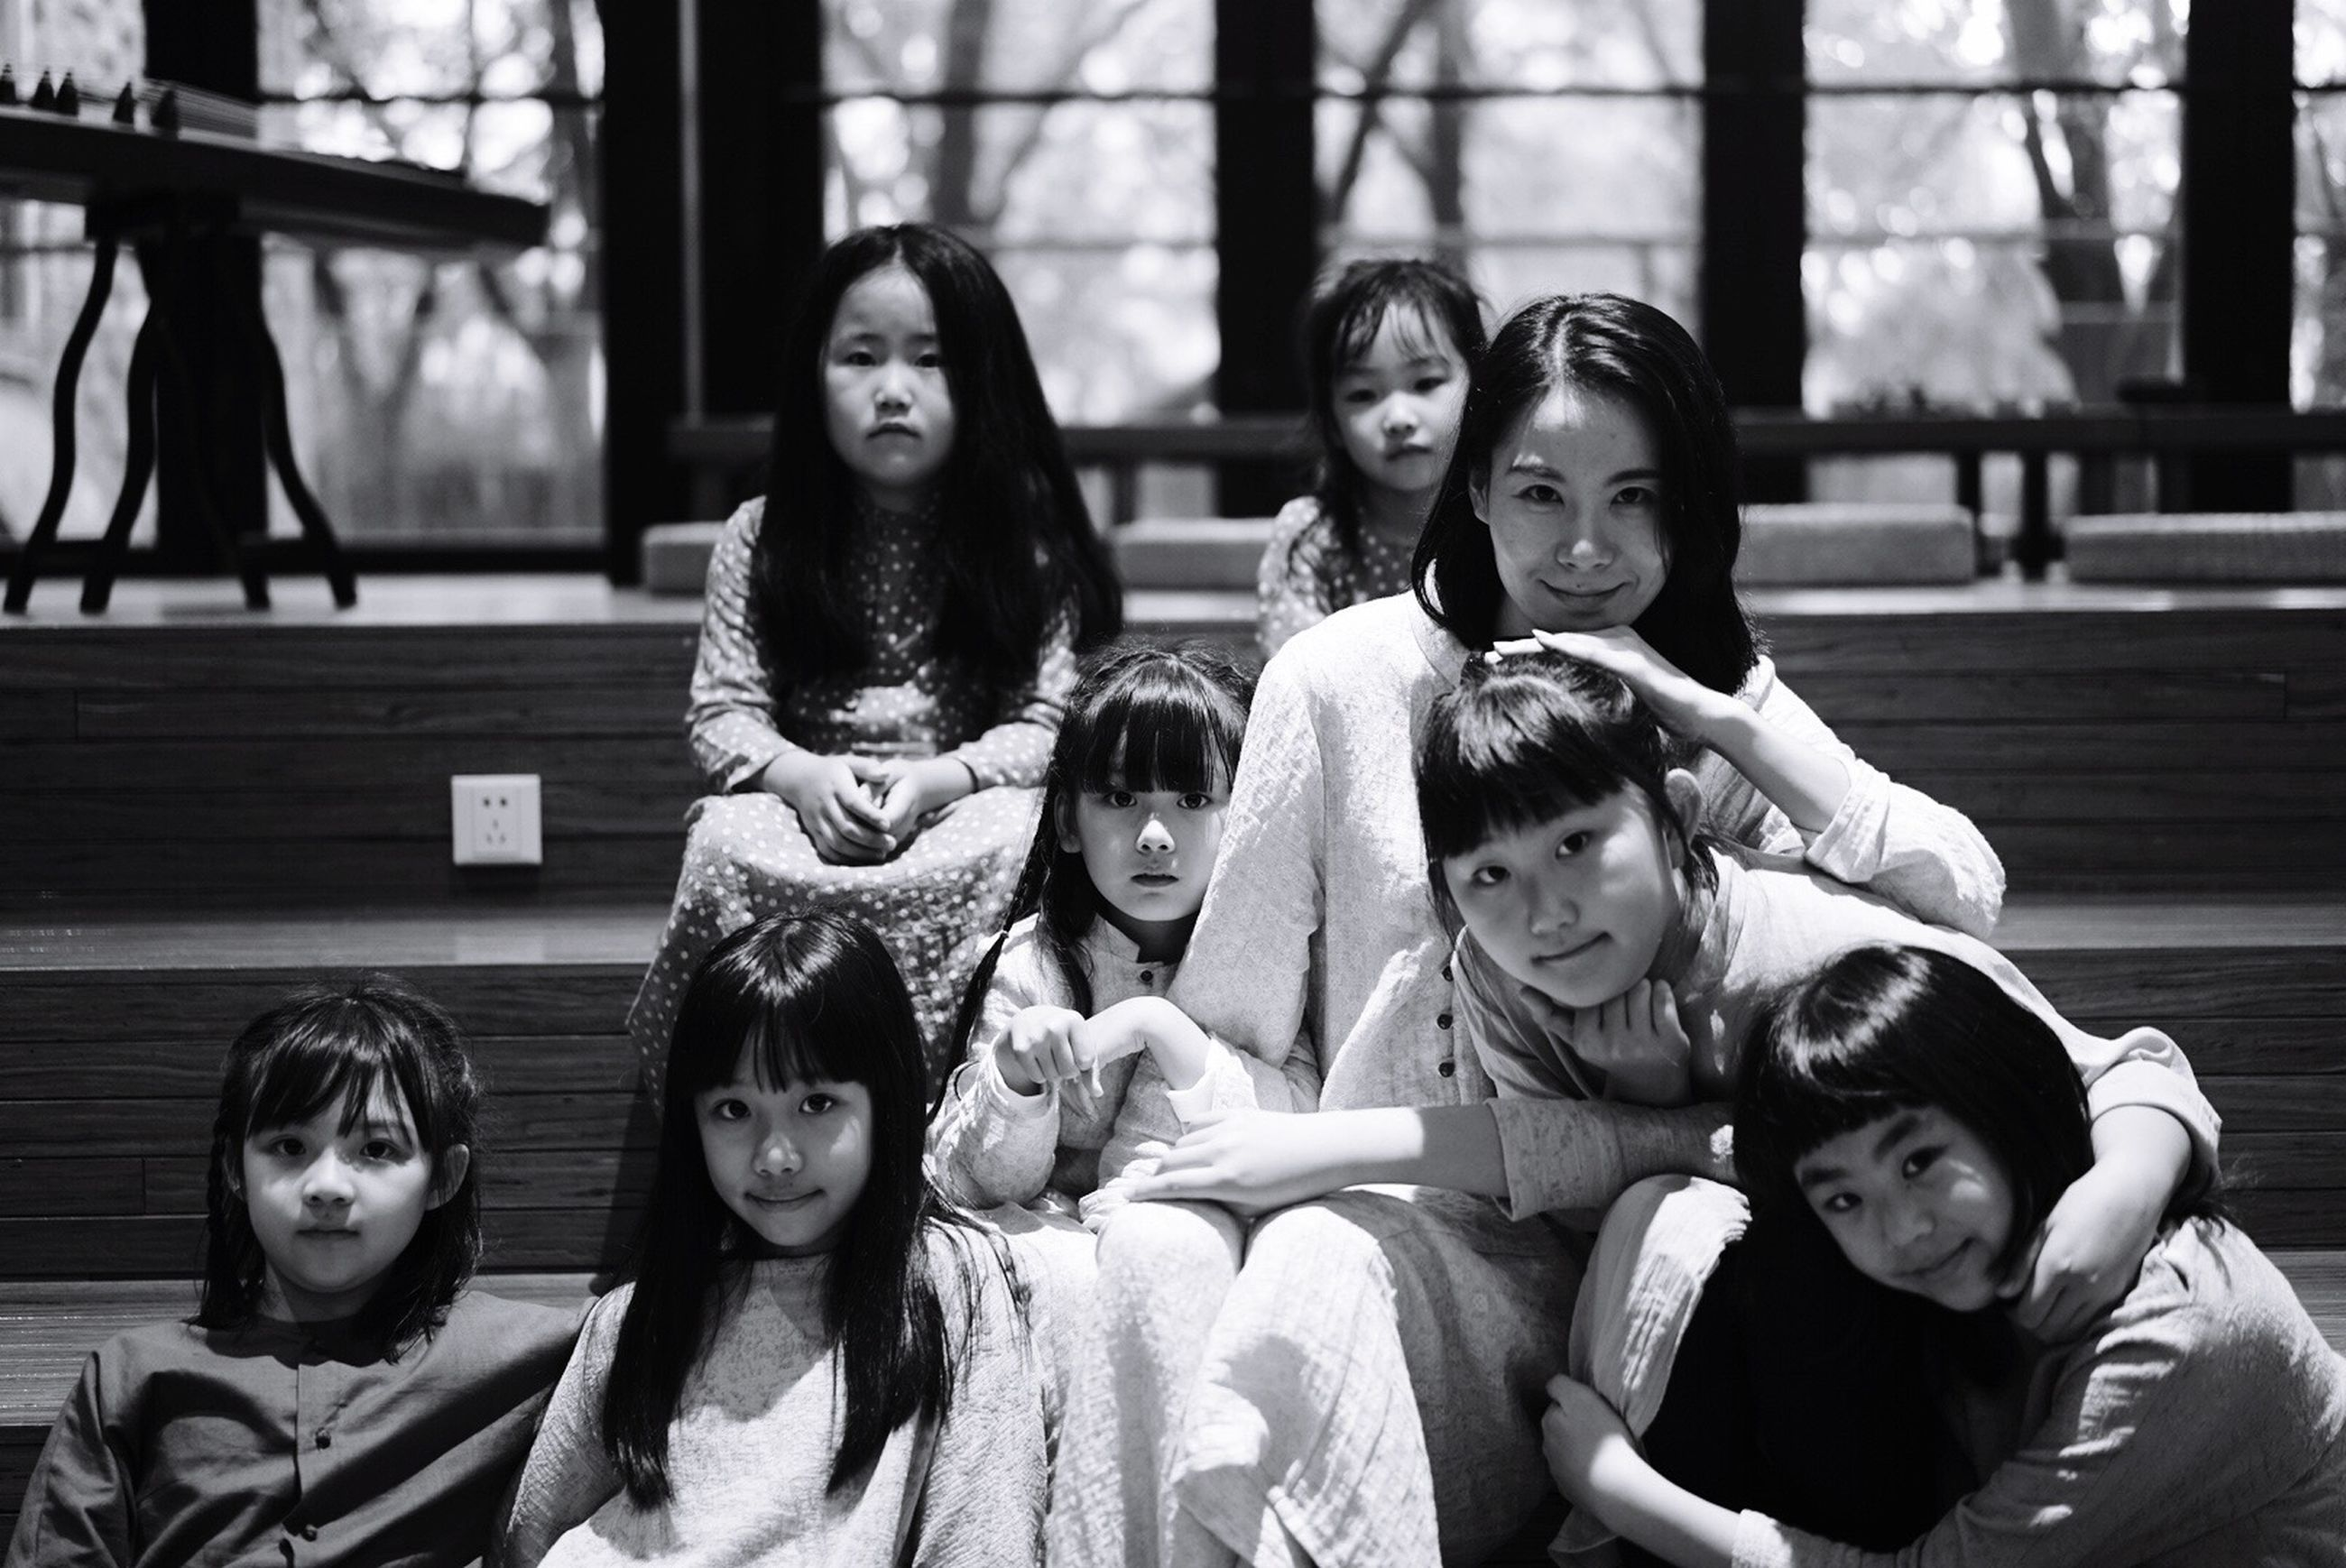 togetherness, bonding, love, leisure activity, lifestyles, smiling, girls, happiness, childhood, casual clothing, portrait, boys, sitting, looking at camera, family, focus on foreground, friendship, fun, person, enjoyment, day